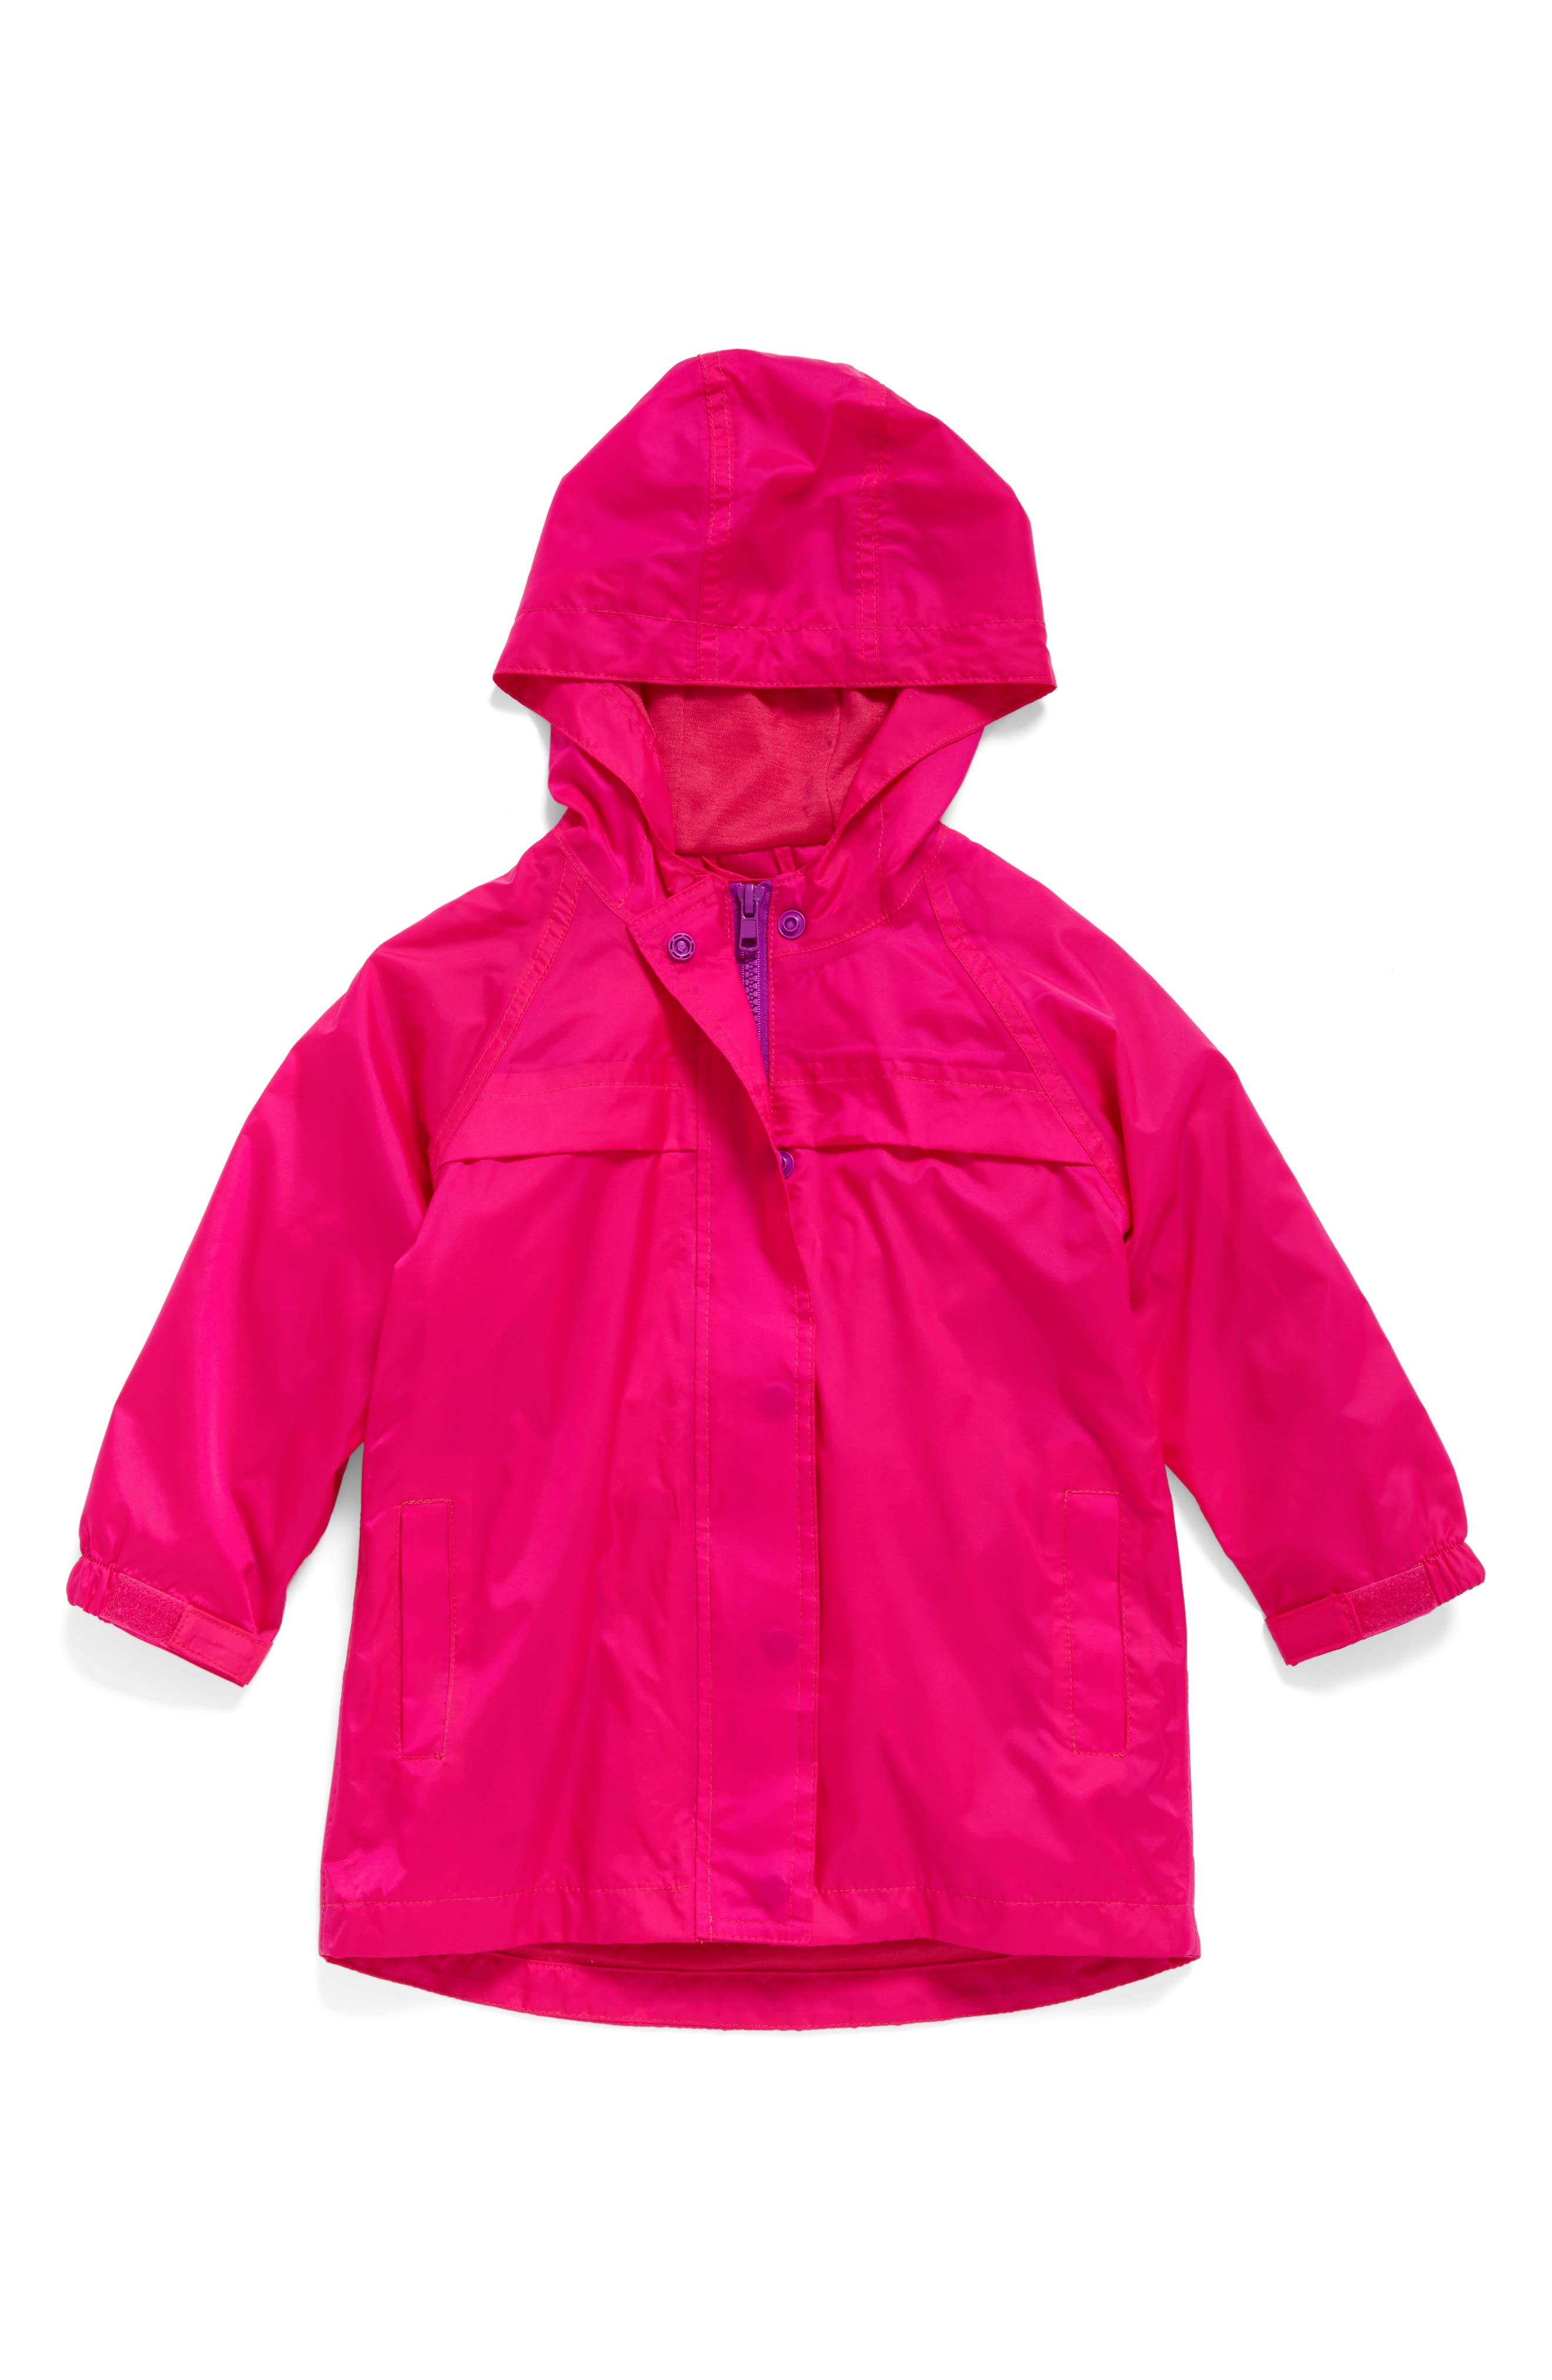 Hooded Raincoat,                         Main,                         color, PINK